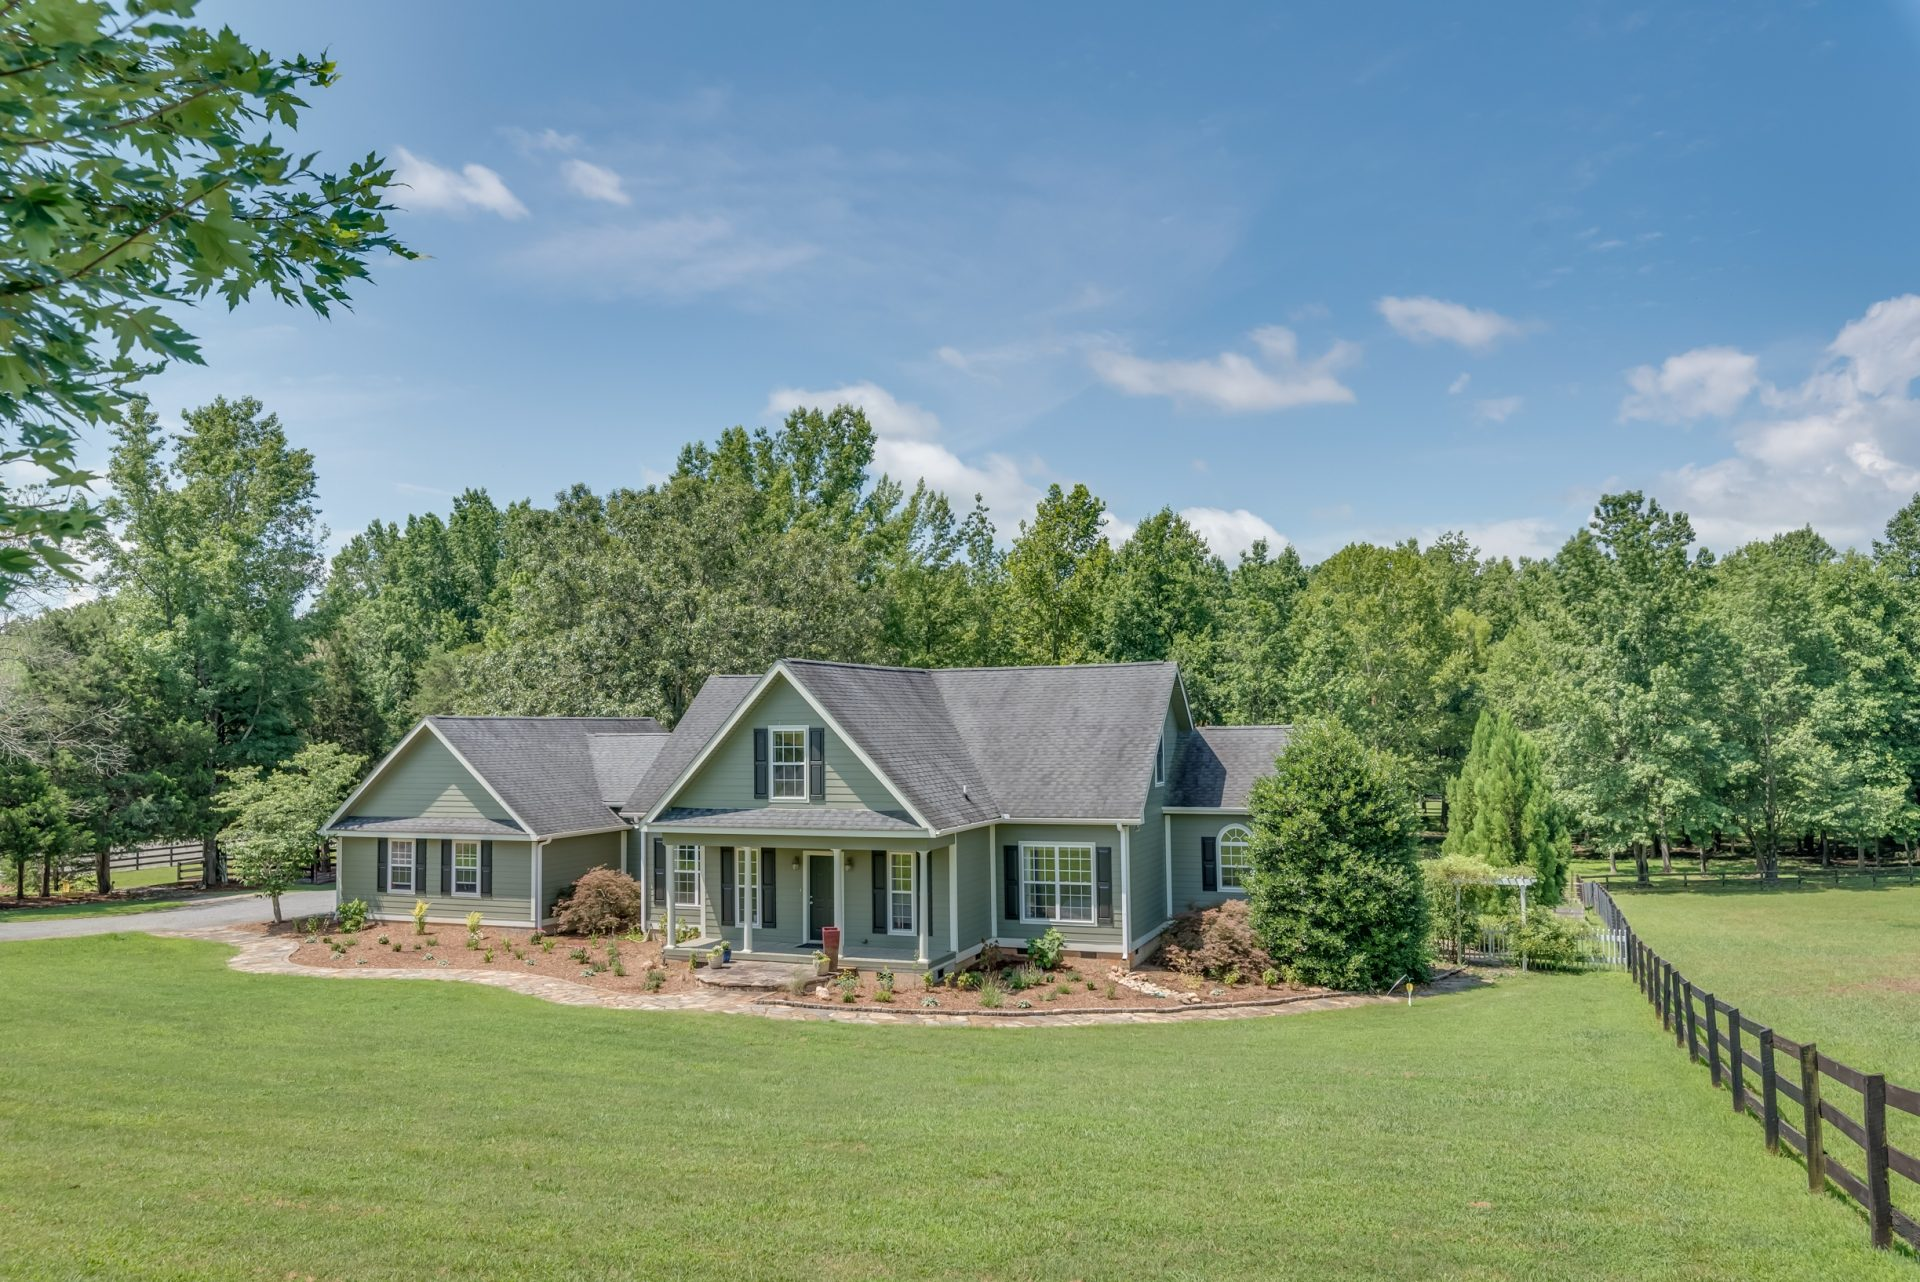 Green Fields: Move in ready horse farm in the heart of CETA trails!